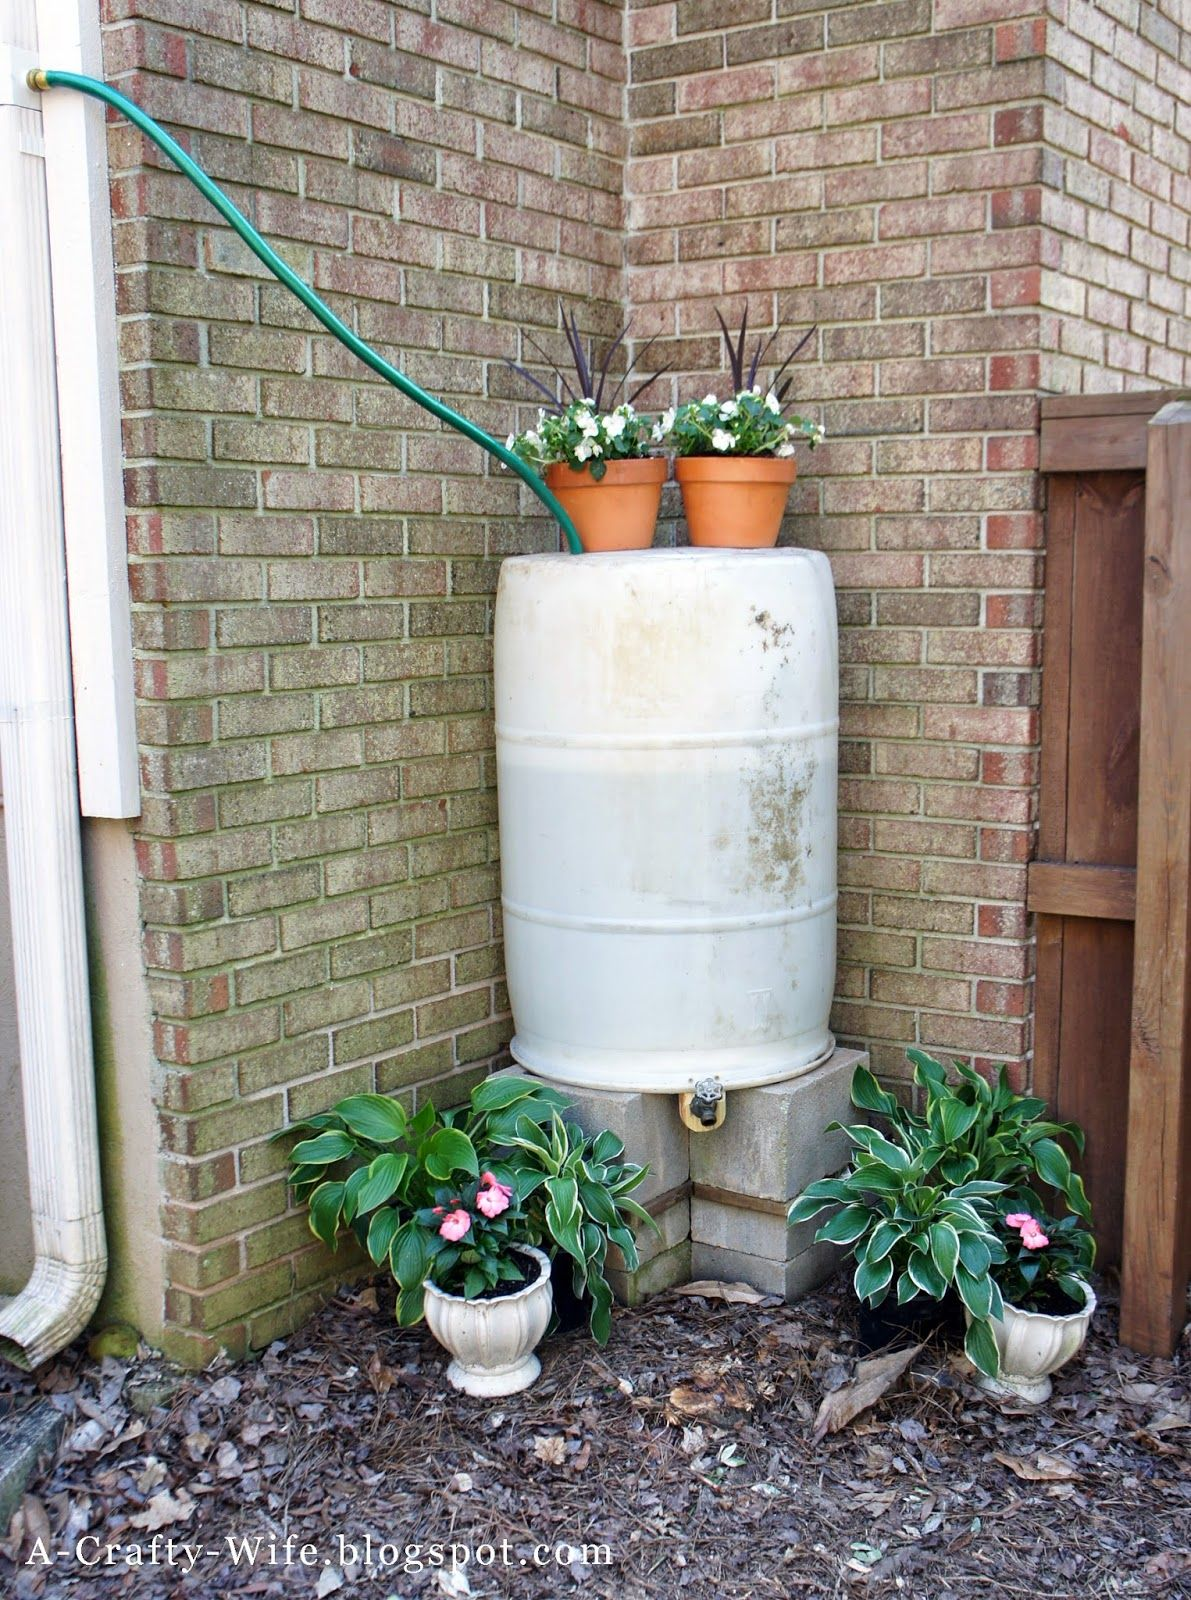 Make your own rain barrel to collect rainwater | A Crafty Wife; includes information on diverter